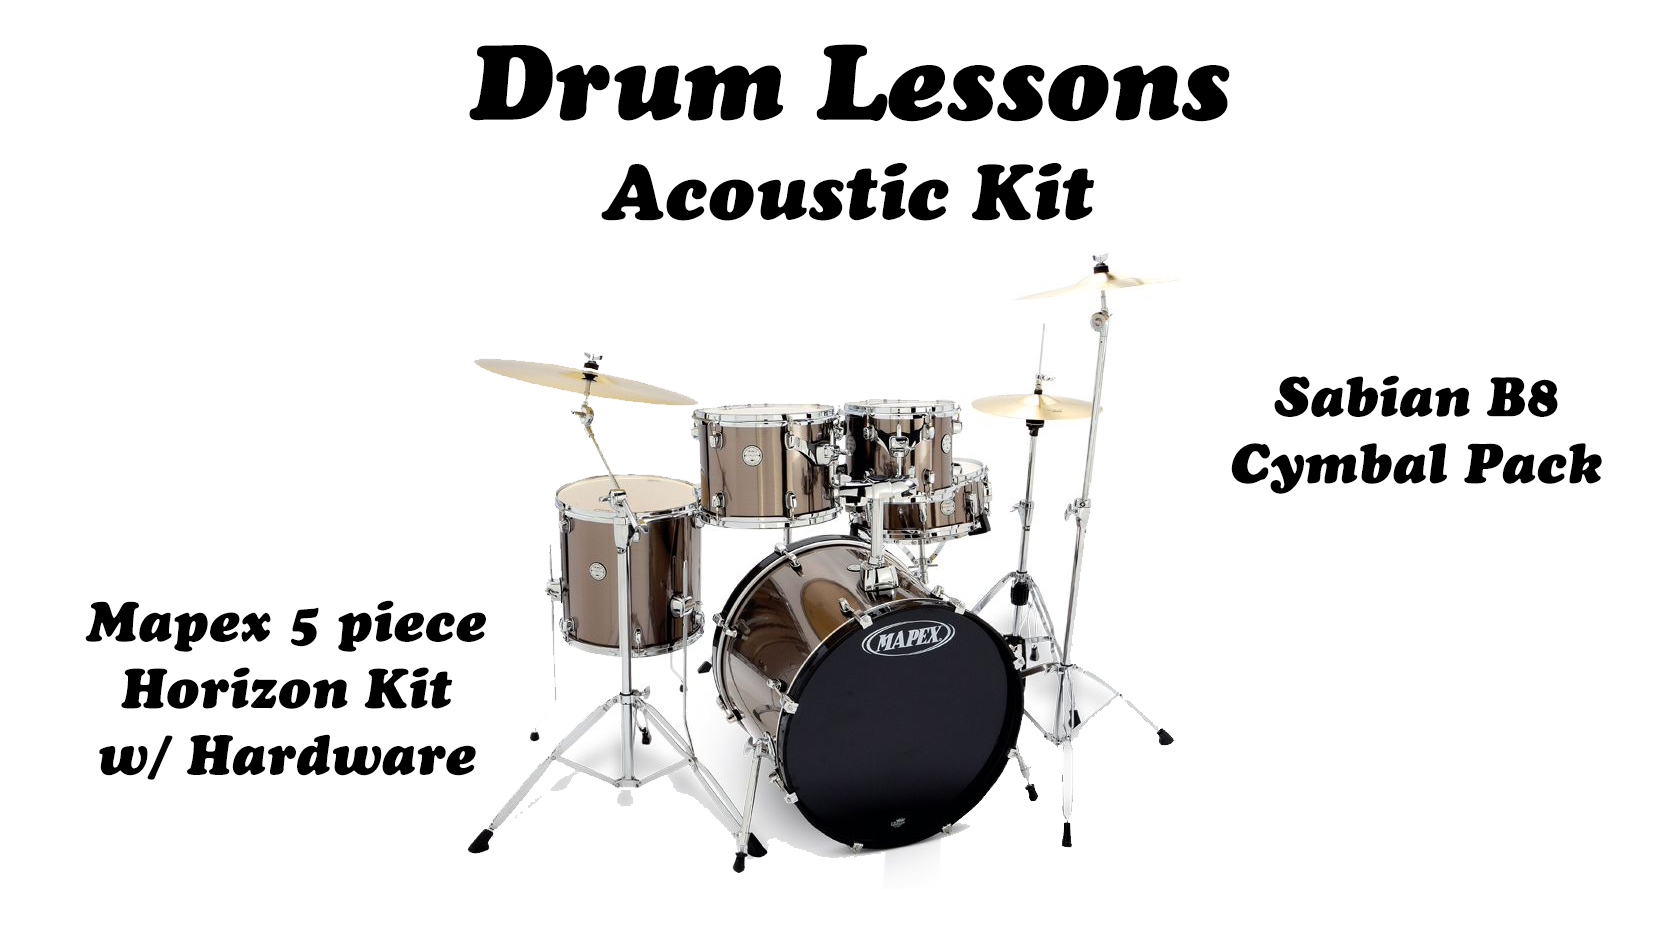 Acoustic Drum Lessons Package